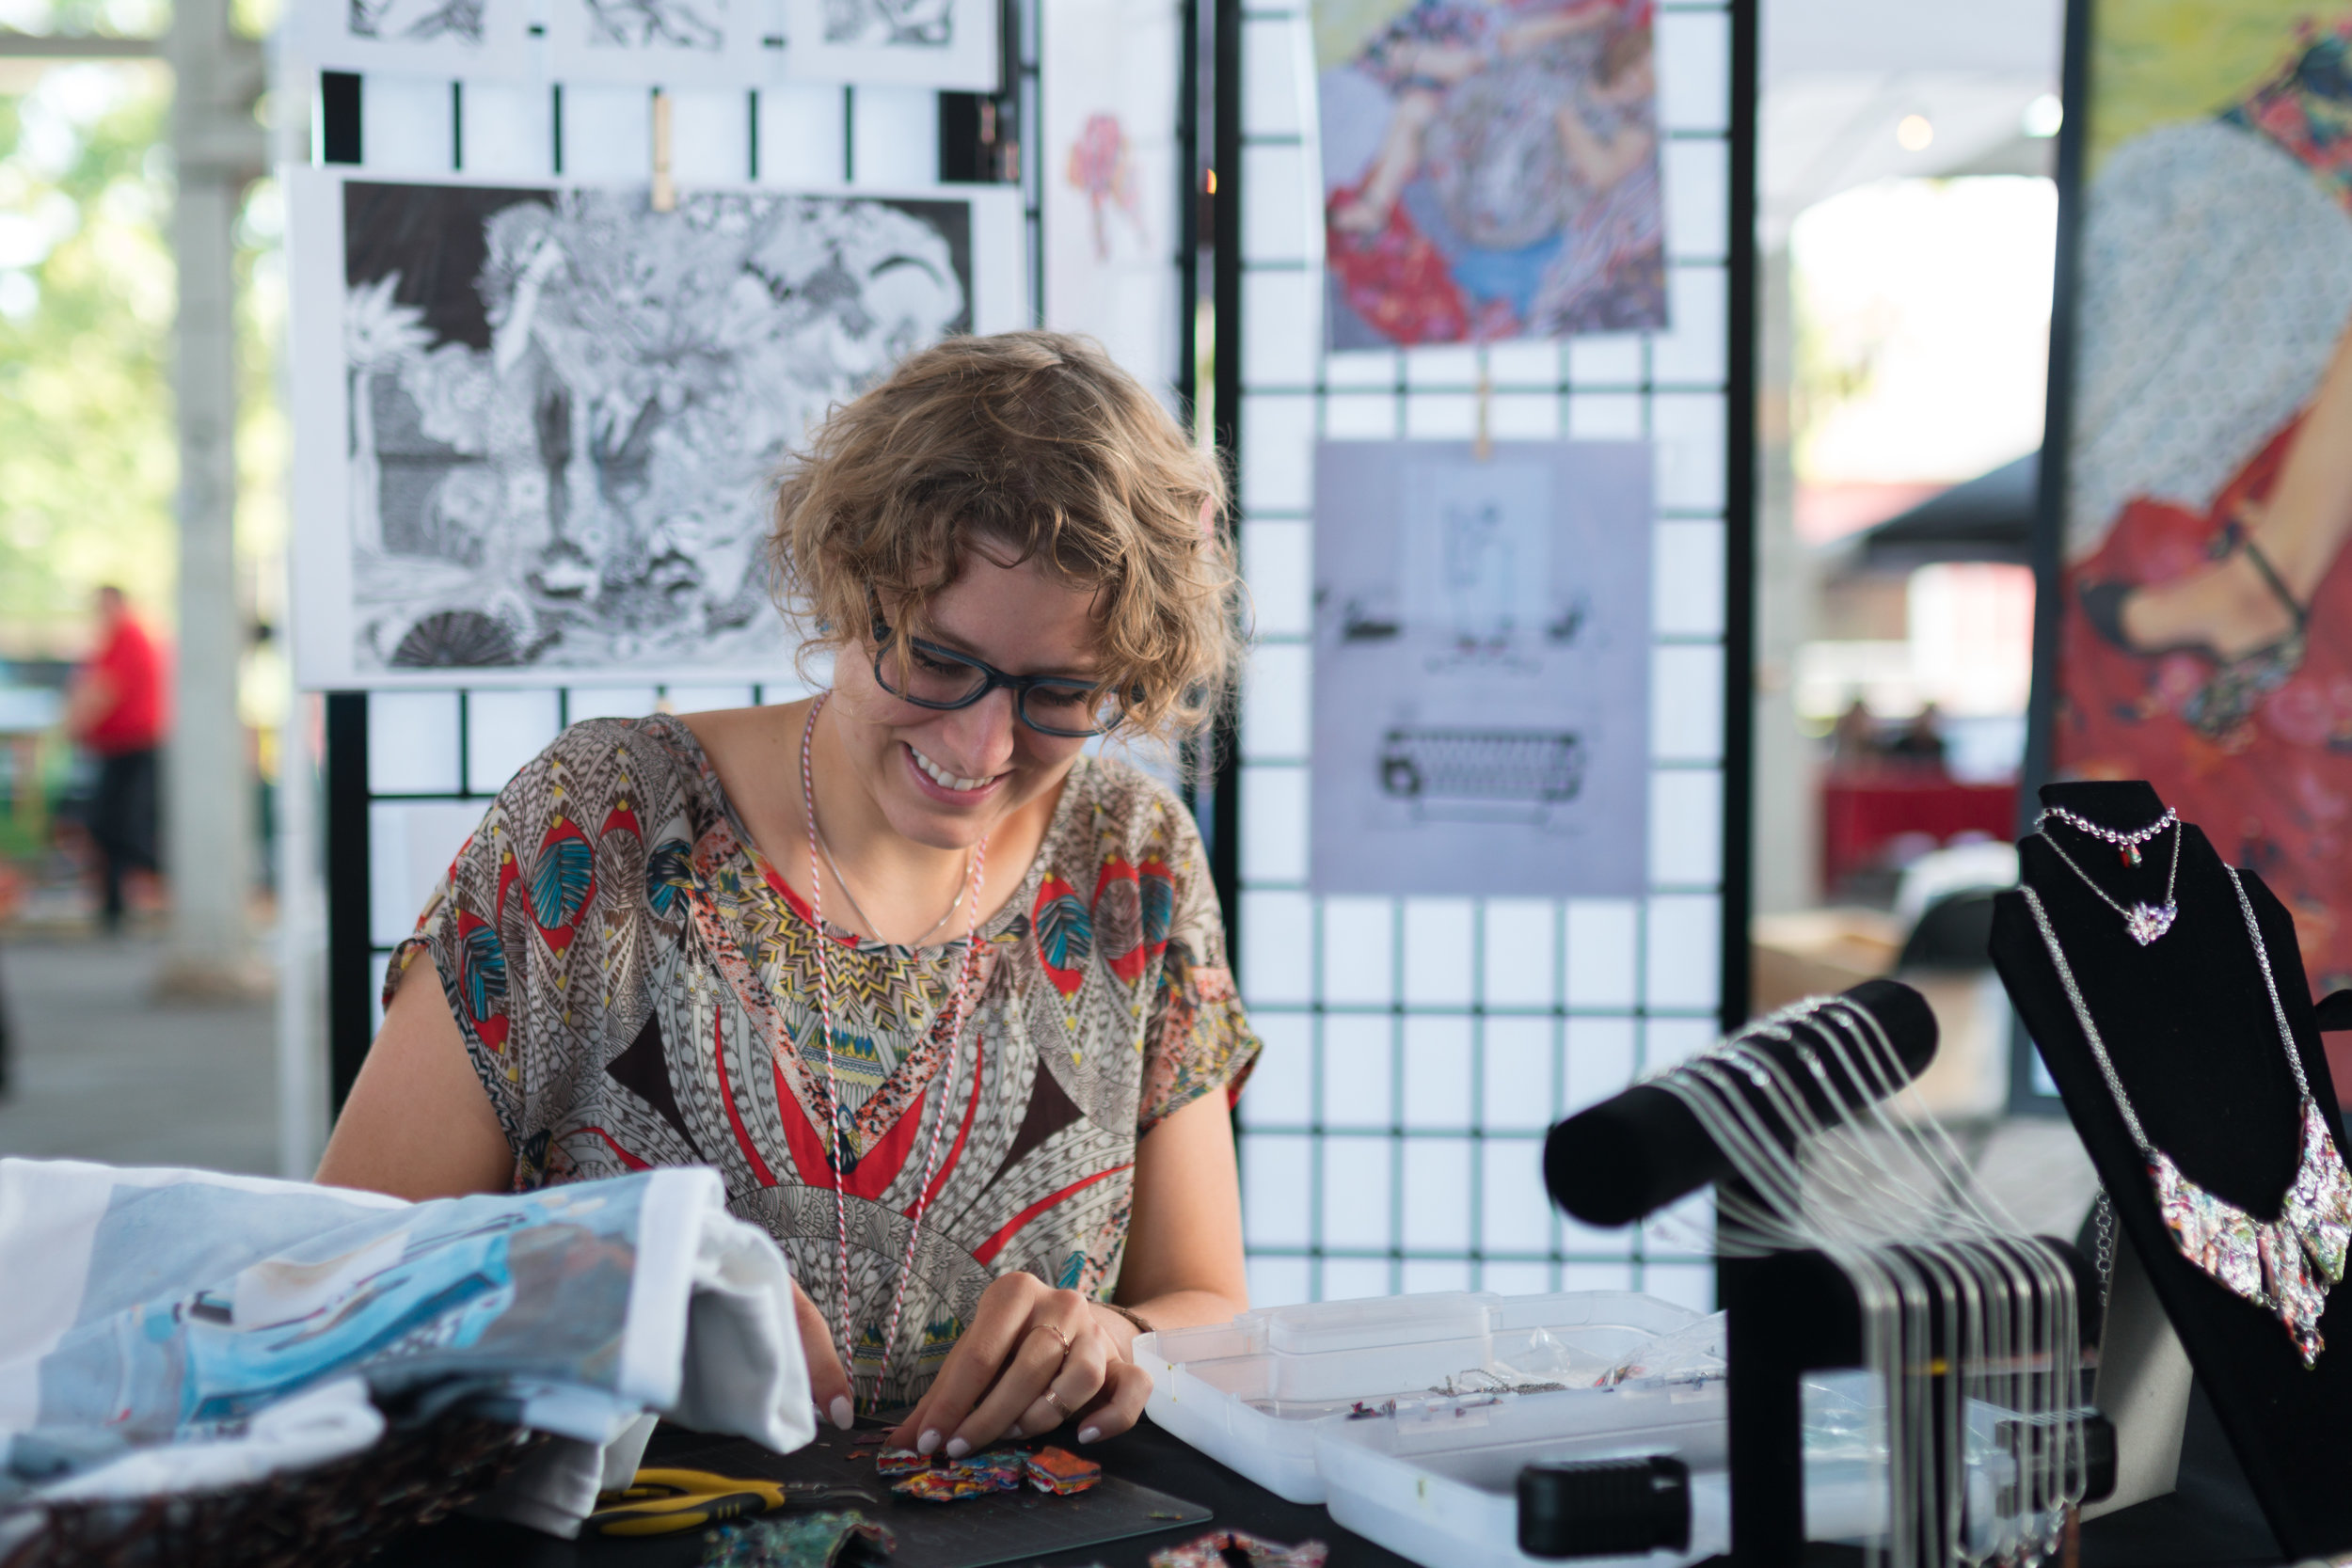 Senior art major Abi Ogle was a vendor at this year's Mini Maker Faire. Photo by Reed Schick.